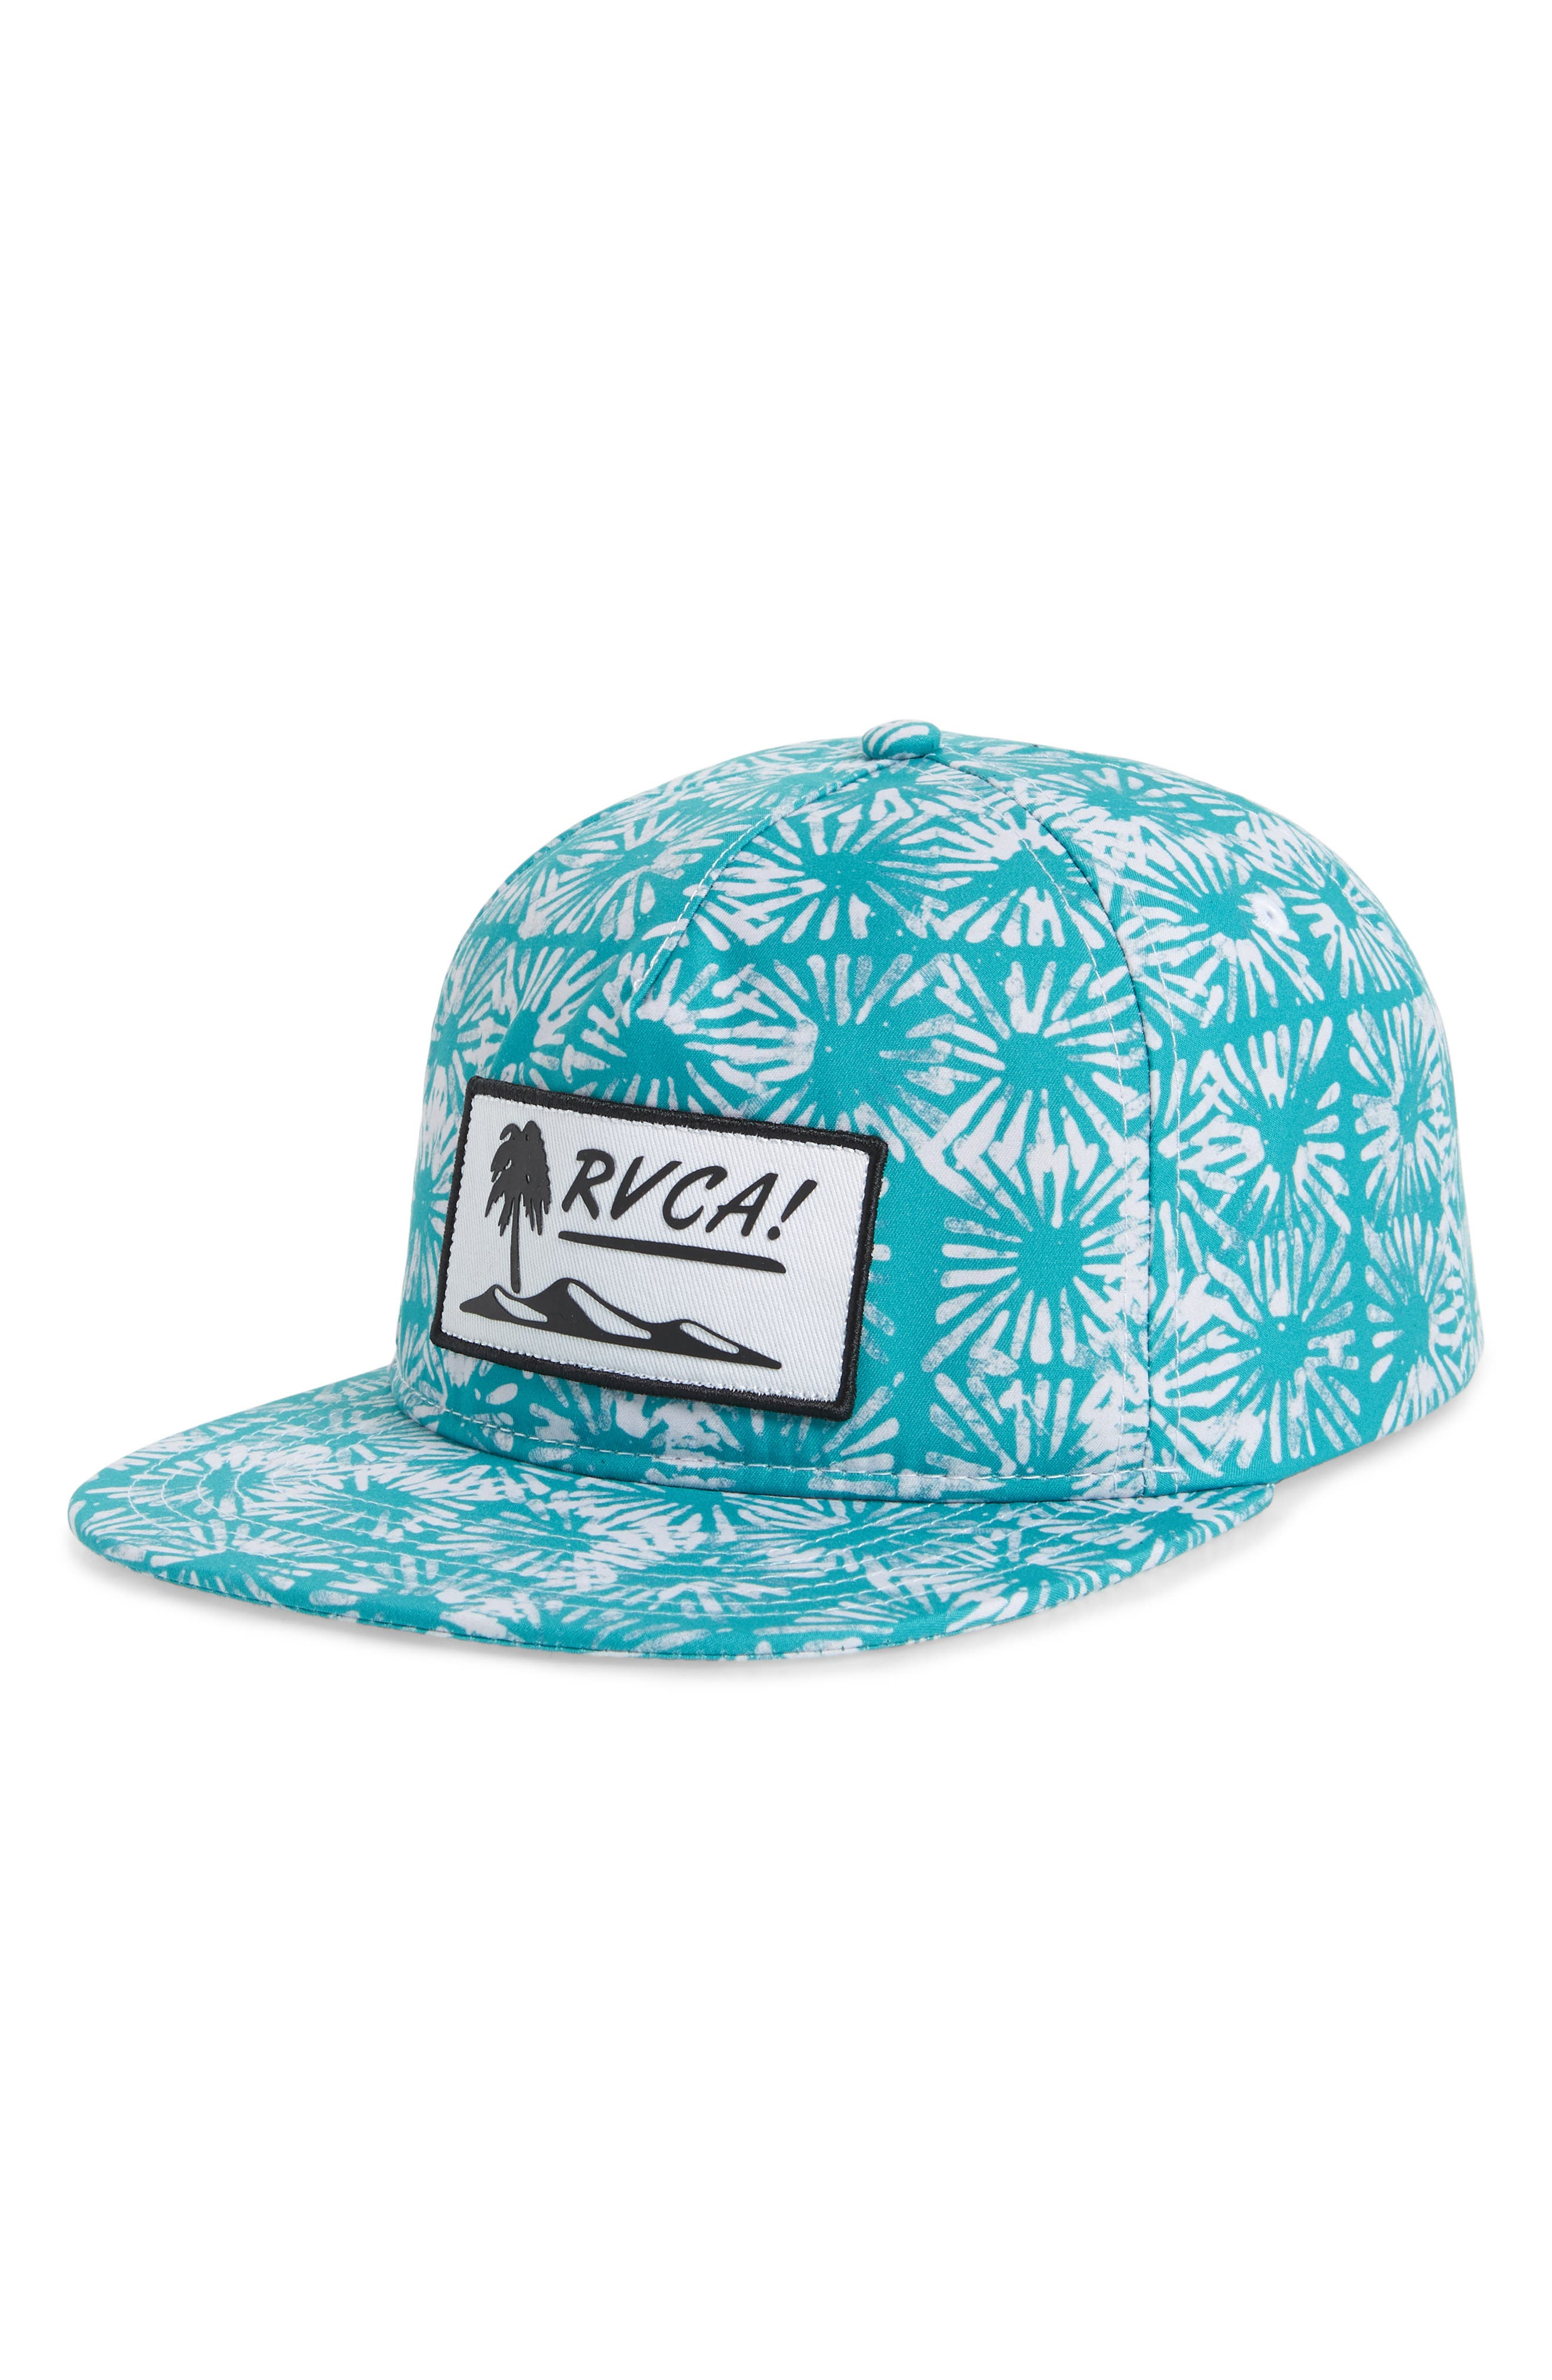 Duh Loris Snapback Cap,                             Main thumbnail 1, color,                             Teal